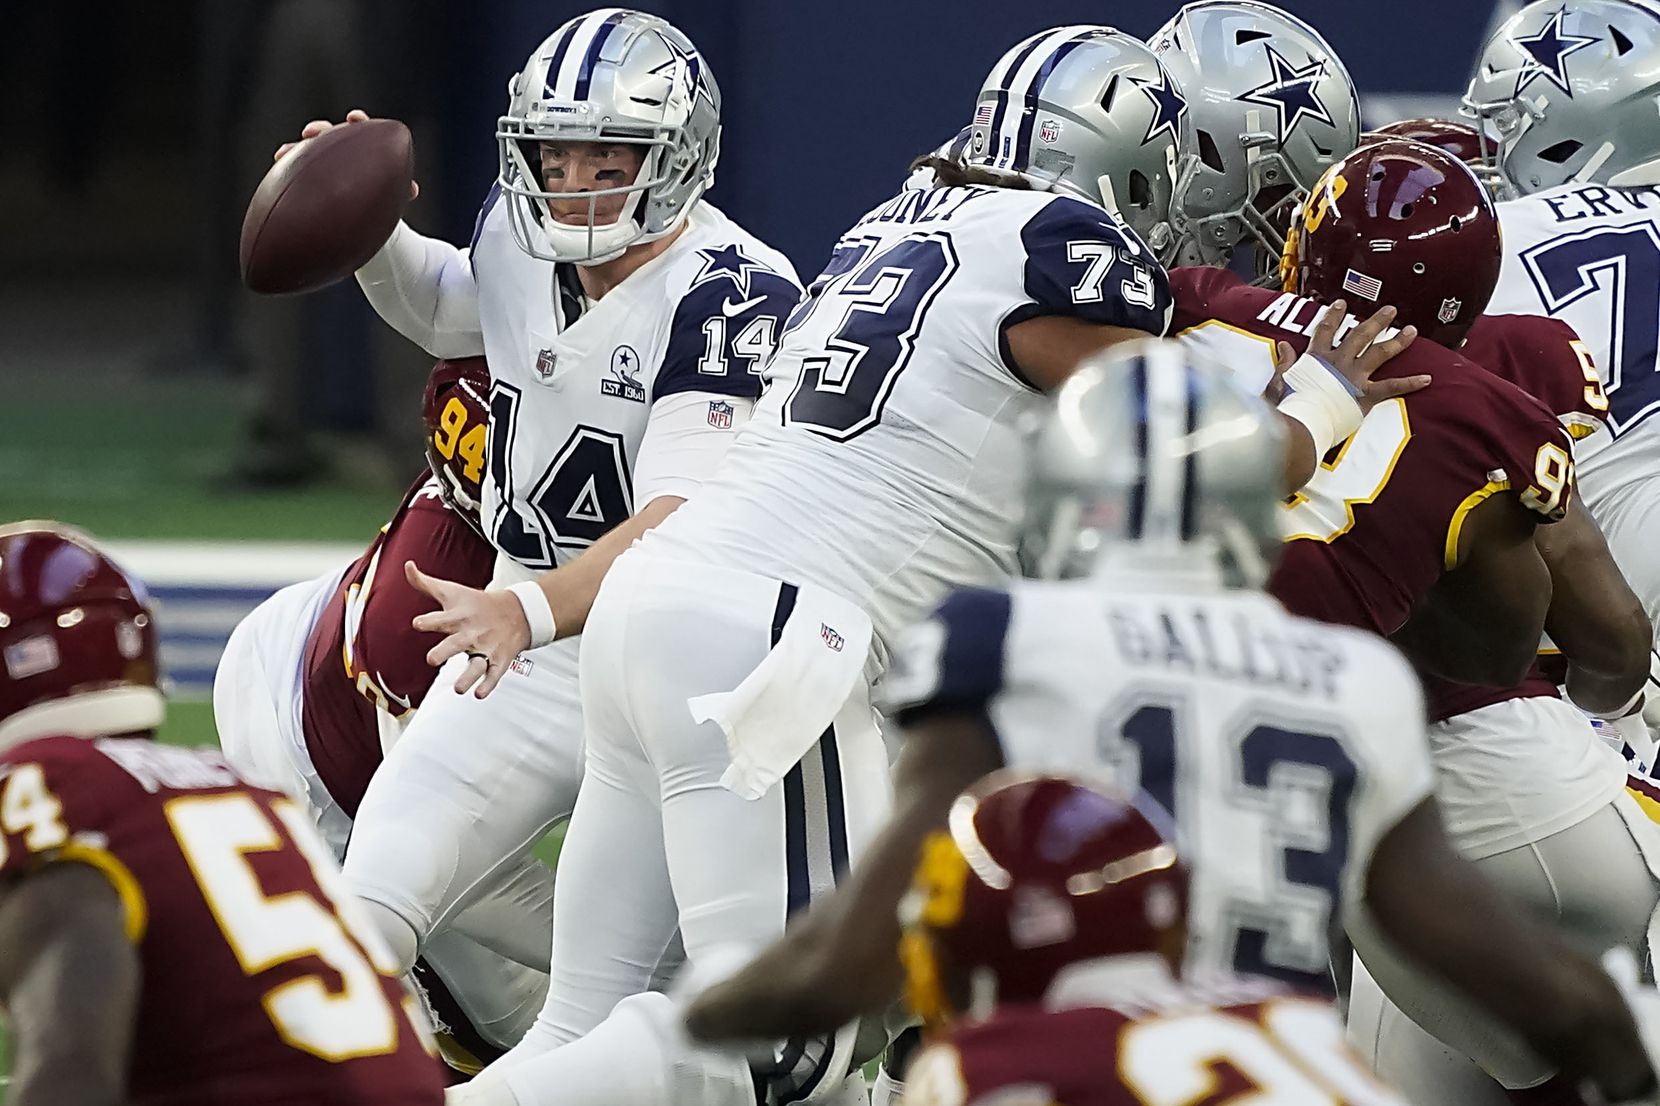 Dallas Cowboys quarterback Andy Dalton (14) looks to pass against the Washington Football Team pass rush during the first quarter of an NFL football game at AT&T Stadium on Thursday, Nov. 26, 2020, in Arlington. (Smiley N. Pool/The Dallas Morning News)